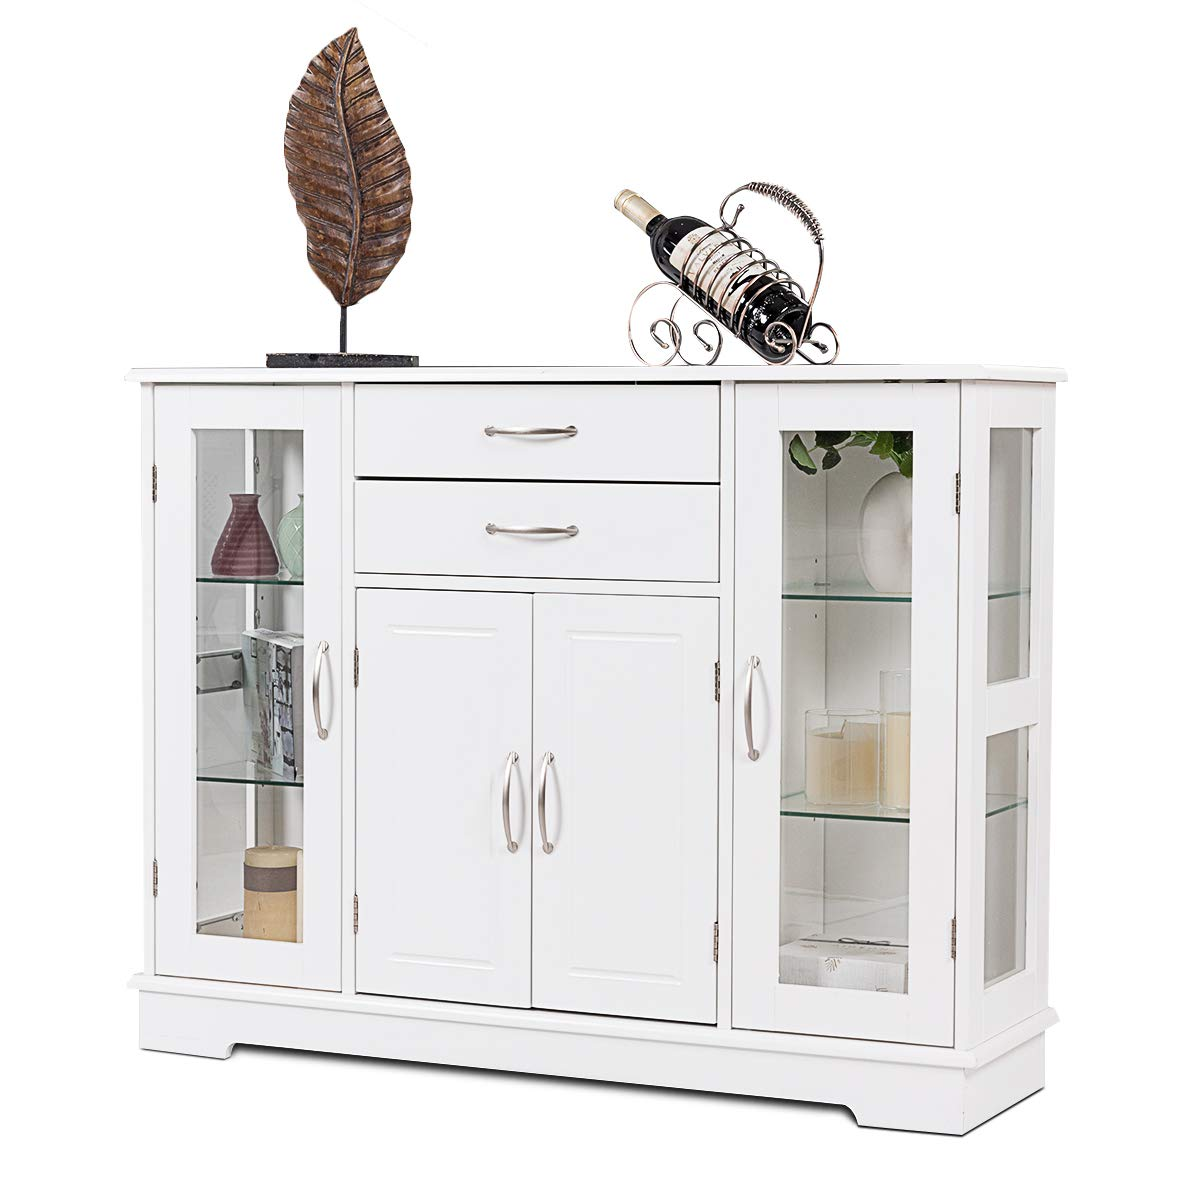 Giantex Sideboard Buffet Server Storage Cabinet Console Table Kitchen Dining Room Furniture Entryway Cupboard with 2 Drawers and 3 Cabinets with Glass Doors, White